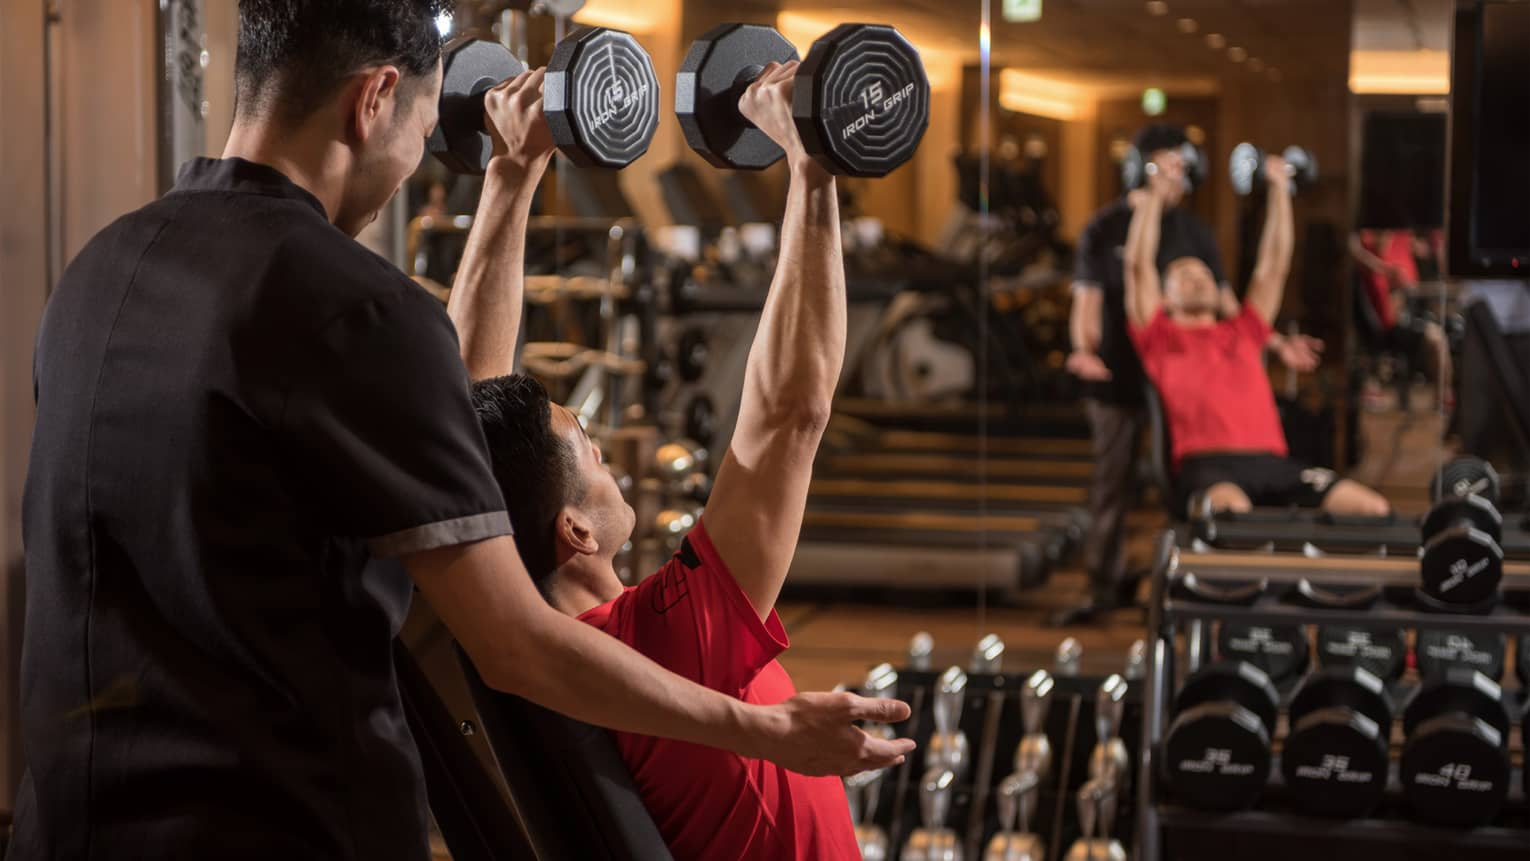 Man in chair in front of mirror lifts two 15-pound weights above his head while personal trainer assists